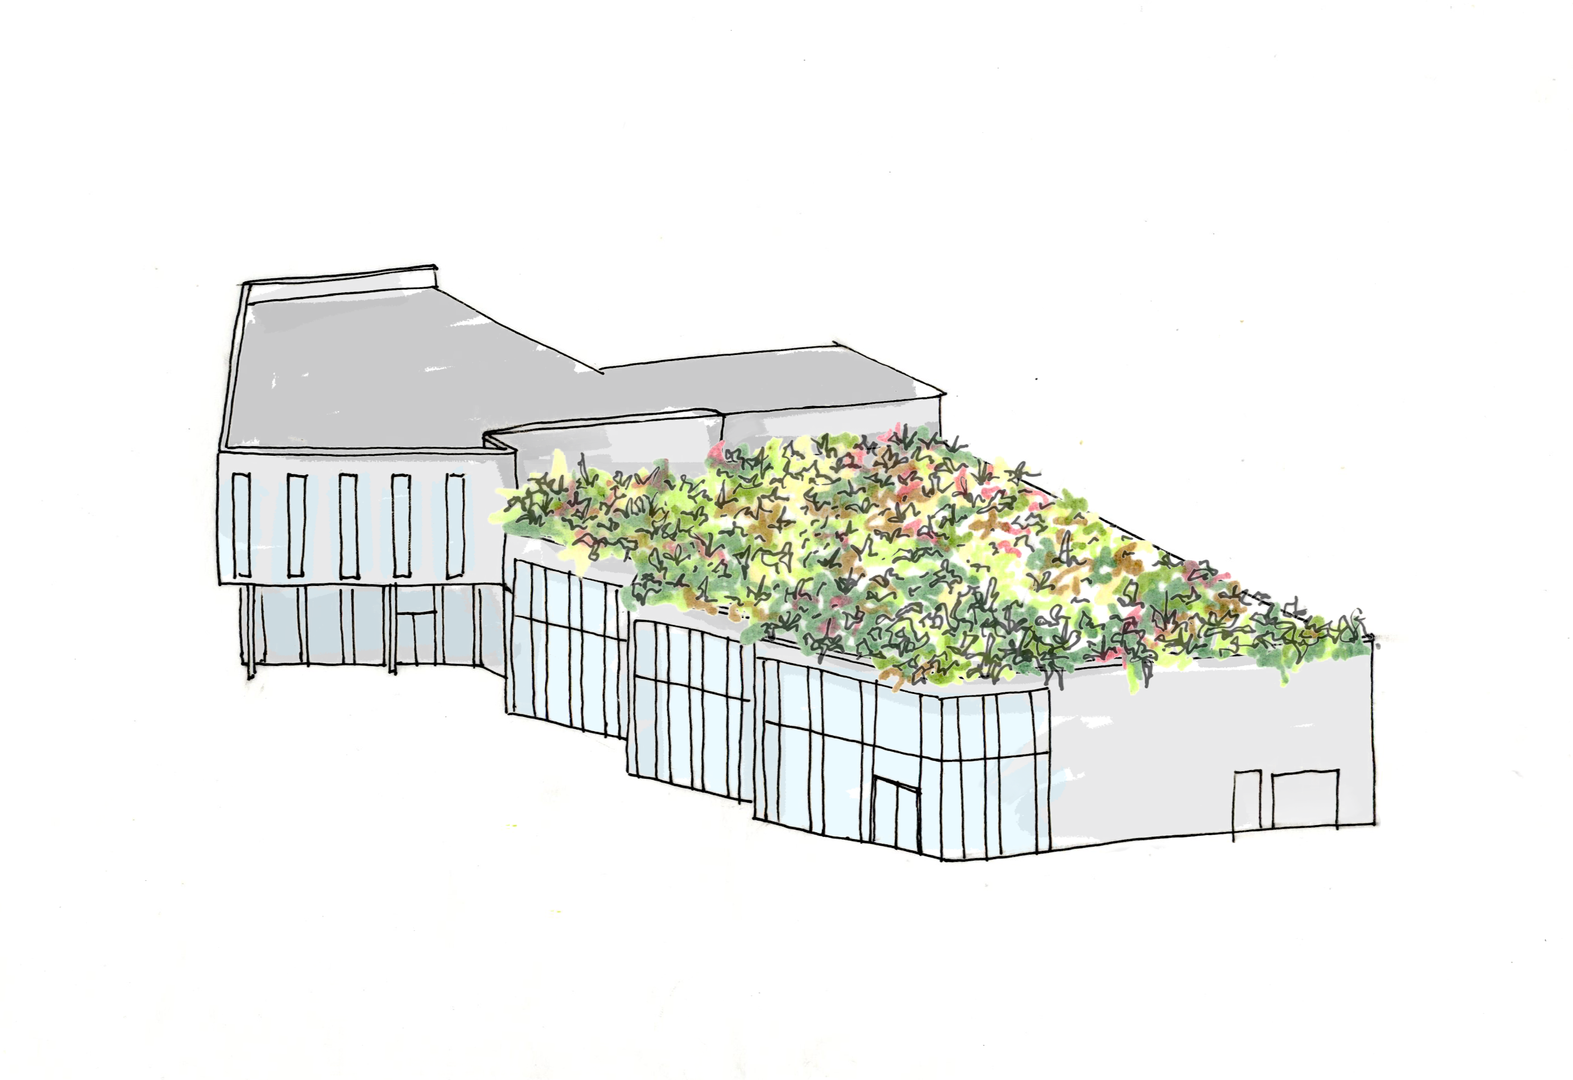 Green Roof Concept Sketch